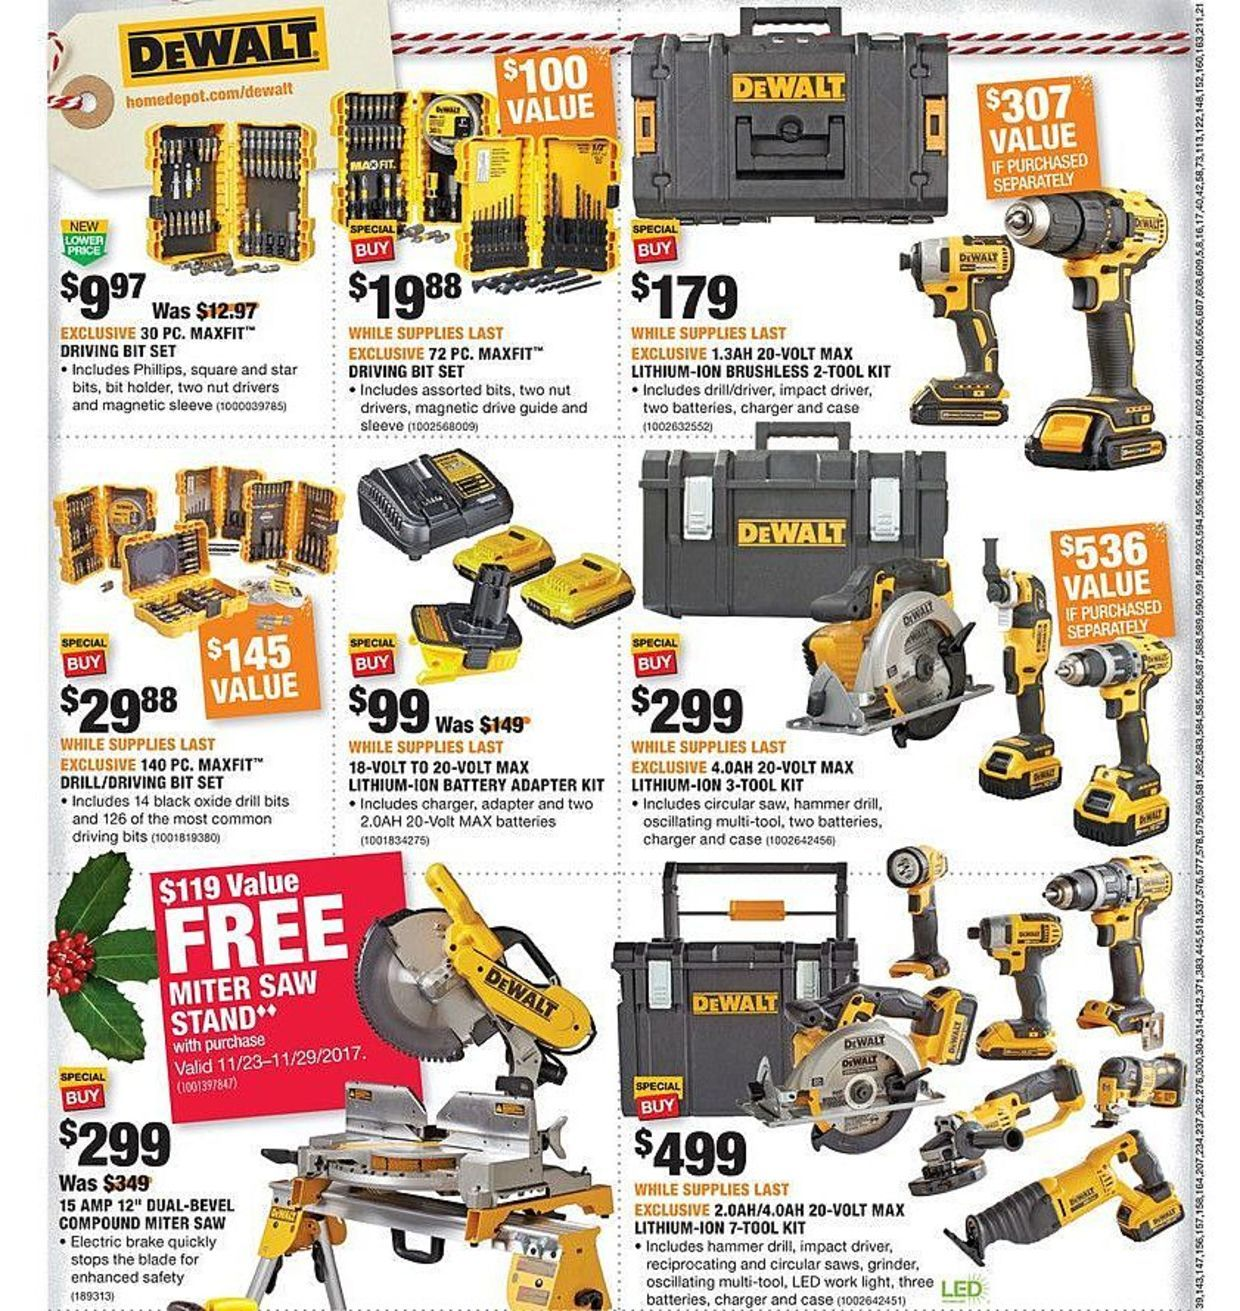 Home Depot Black Friday 2017 Ads And Deals As Usual Home Depot Is One Of The Best Black Friday Sales For Huge Discounts Home Depot Coupons Depot Black Friday